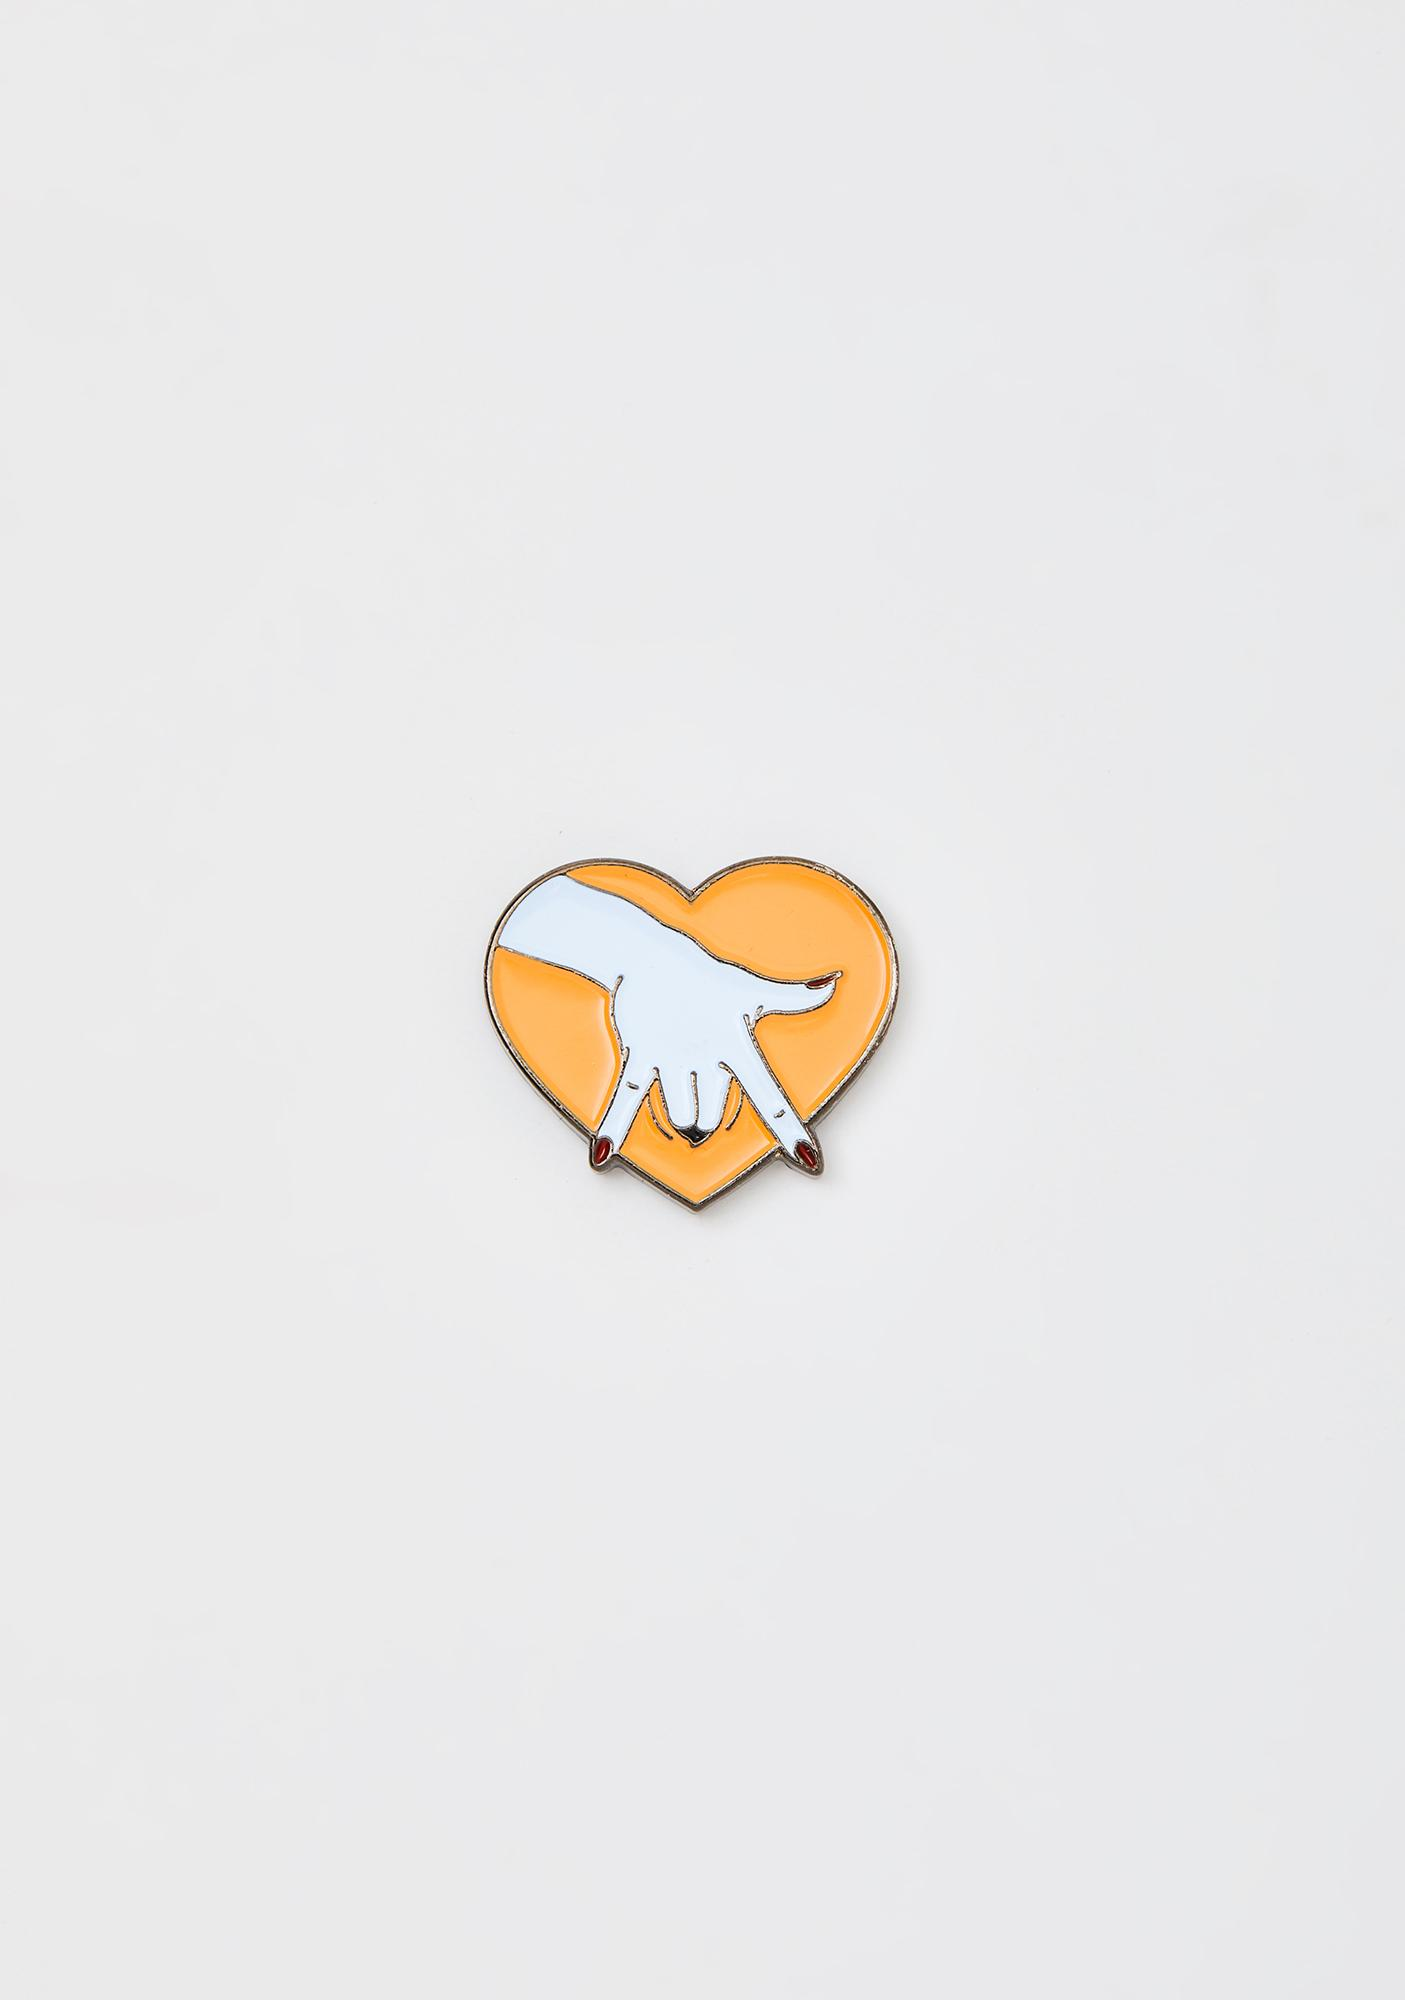 Eromatica We Fit Together Enamel Pin